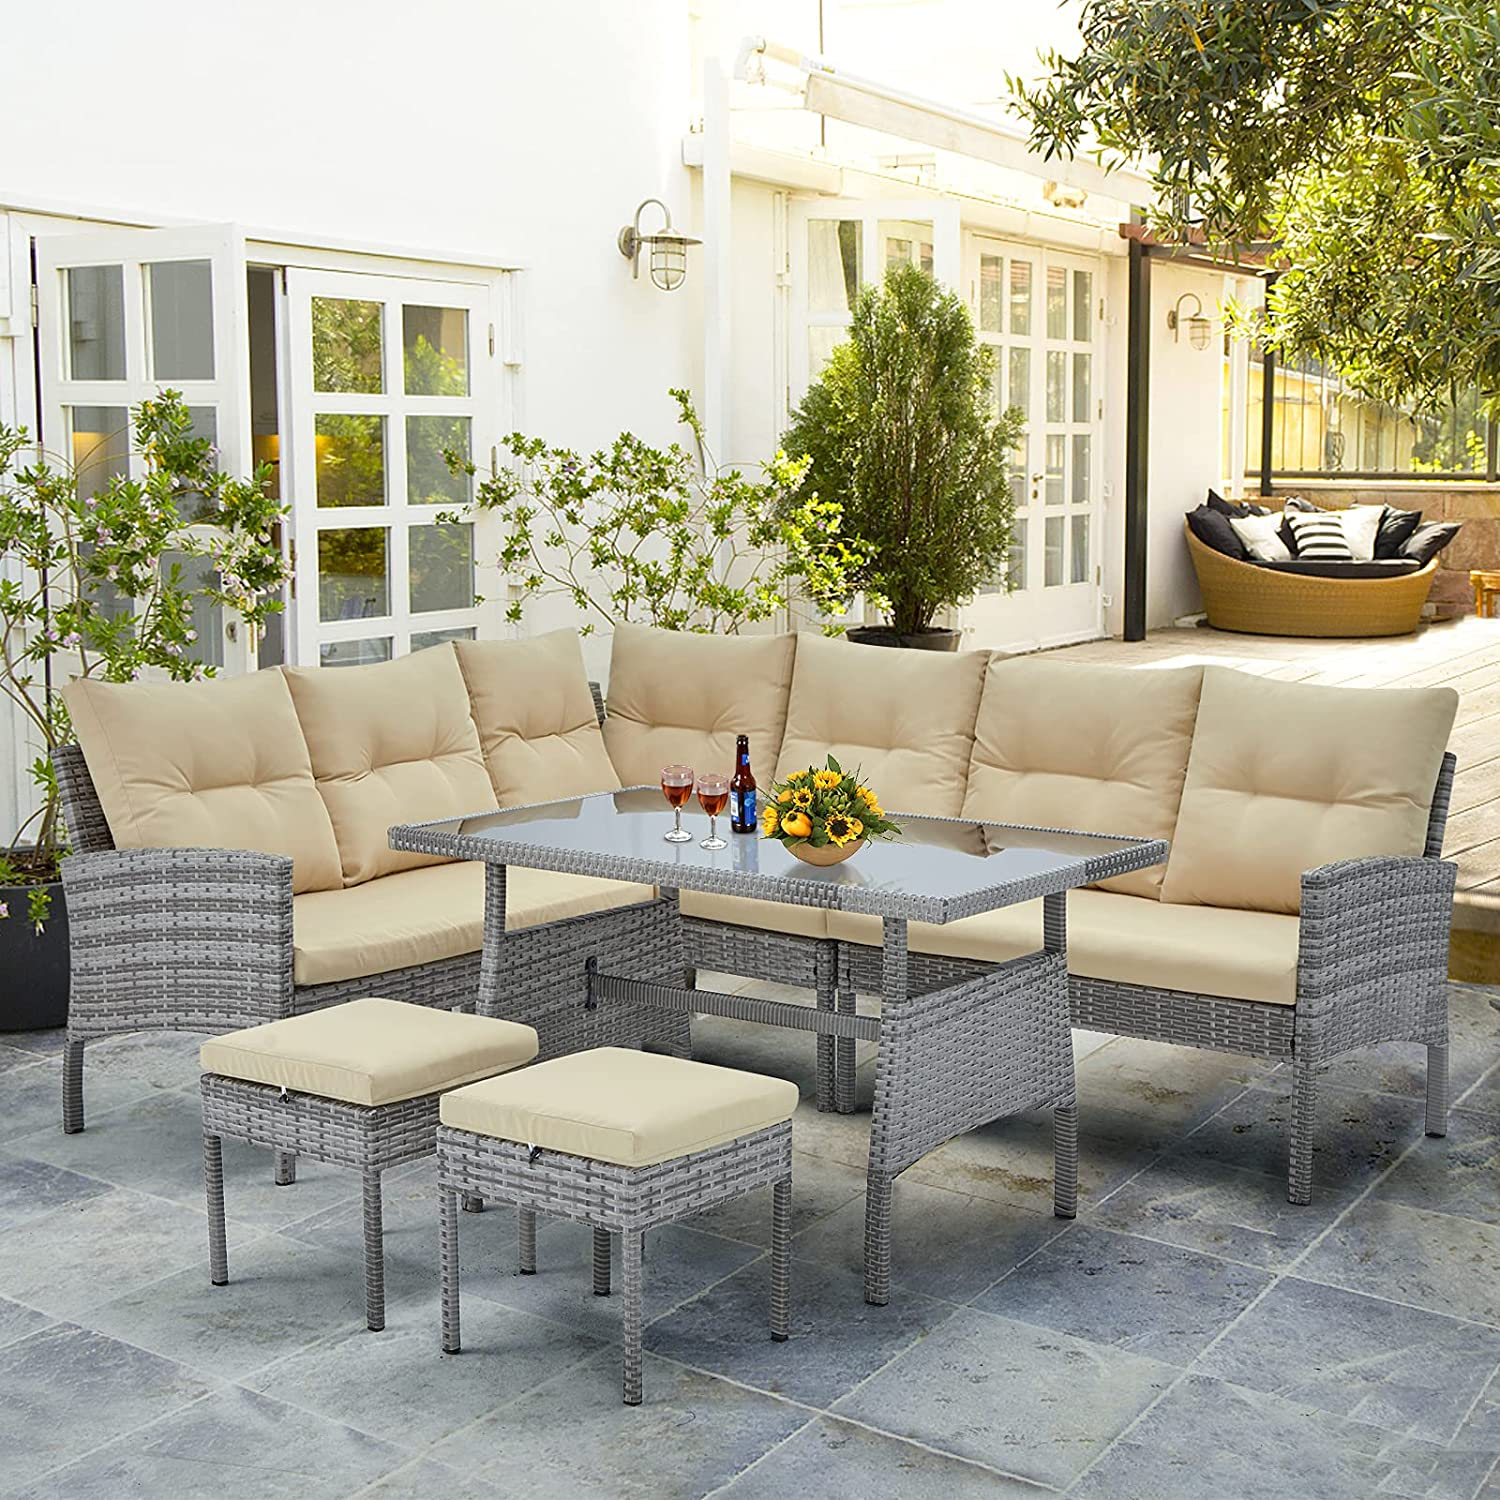 AECOJOY 6 Pieces Outdoor Patio Furniture Set, PE Rattan Wicker Sectional Sofa Set with Glass Dining Table, 2 Ottomans and Washable Cushions, Grey Rattan, Beige Cushions